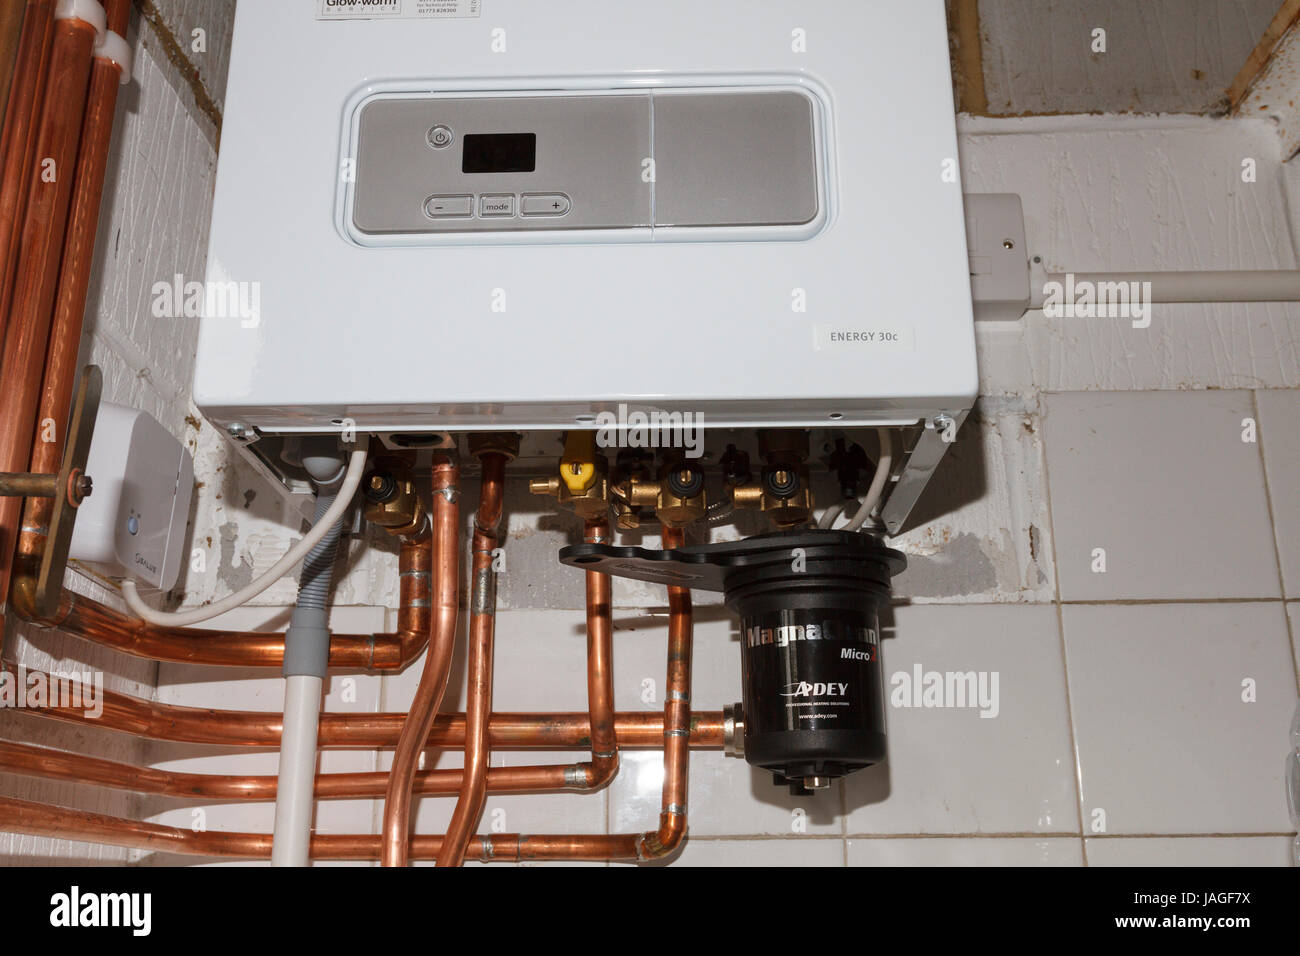 hight resolution of domestic gas combi boiler and pipework installed in an english home uk stock image